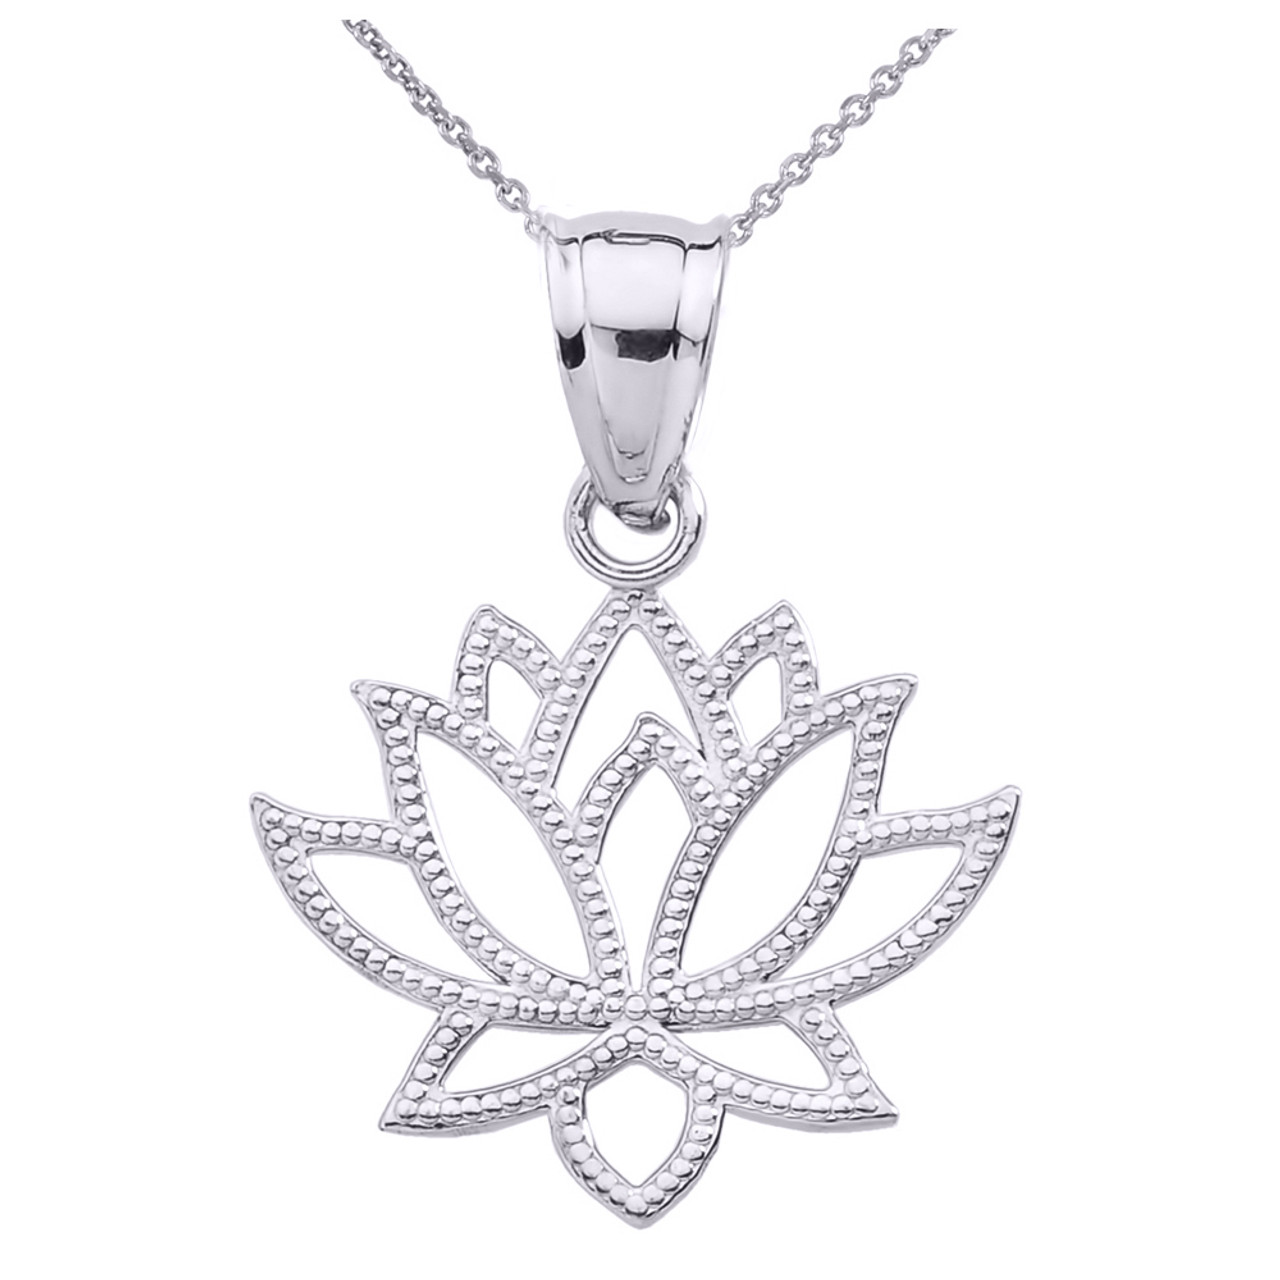 necklace a jewellers rose lotus with diamond grahams chain pendant gold image in